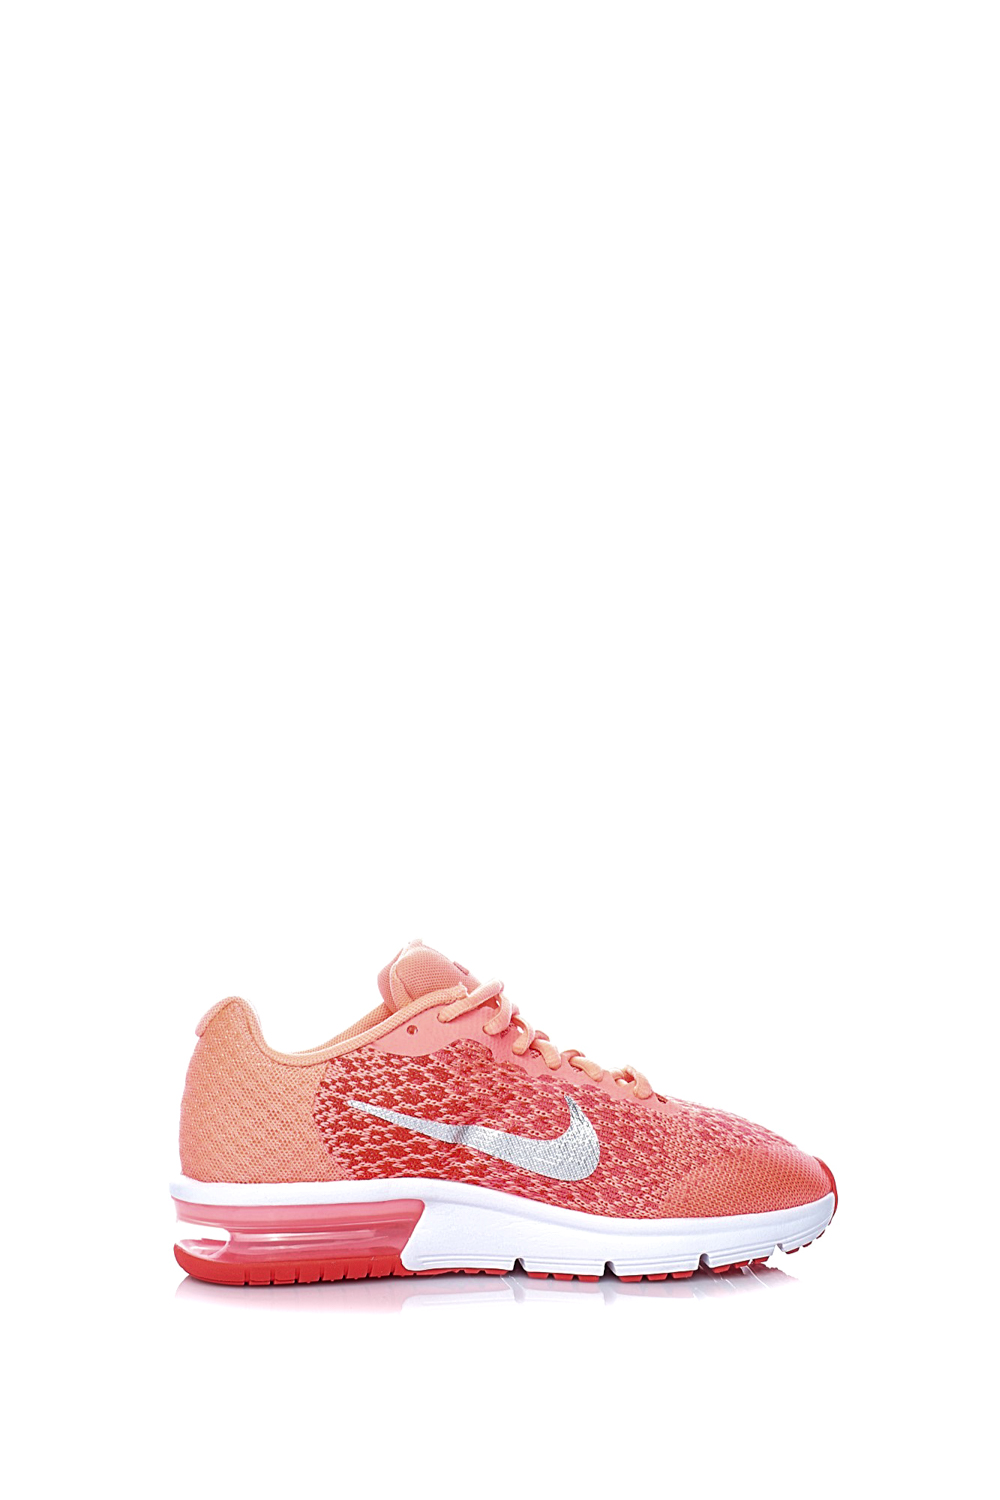 NIKE – Παιδικά αθλητικά παπούτσια Nike AIR MAX SEQUENT 2 (GS) πορτοκαλί